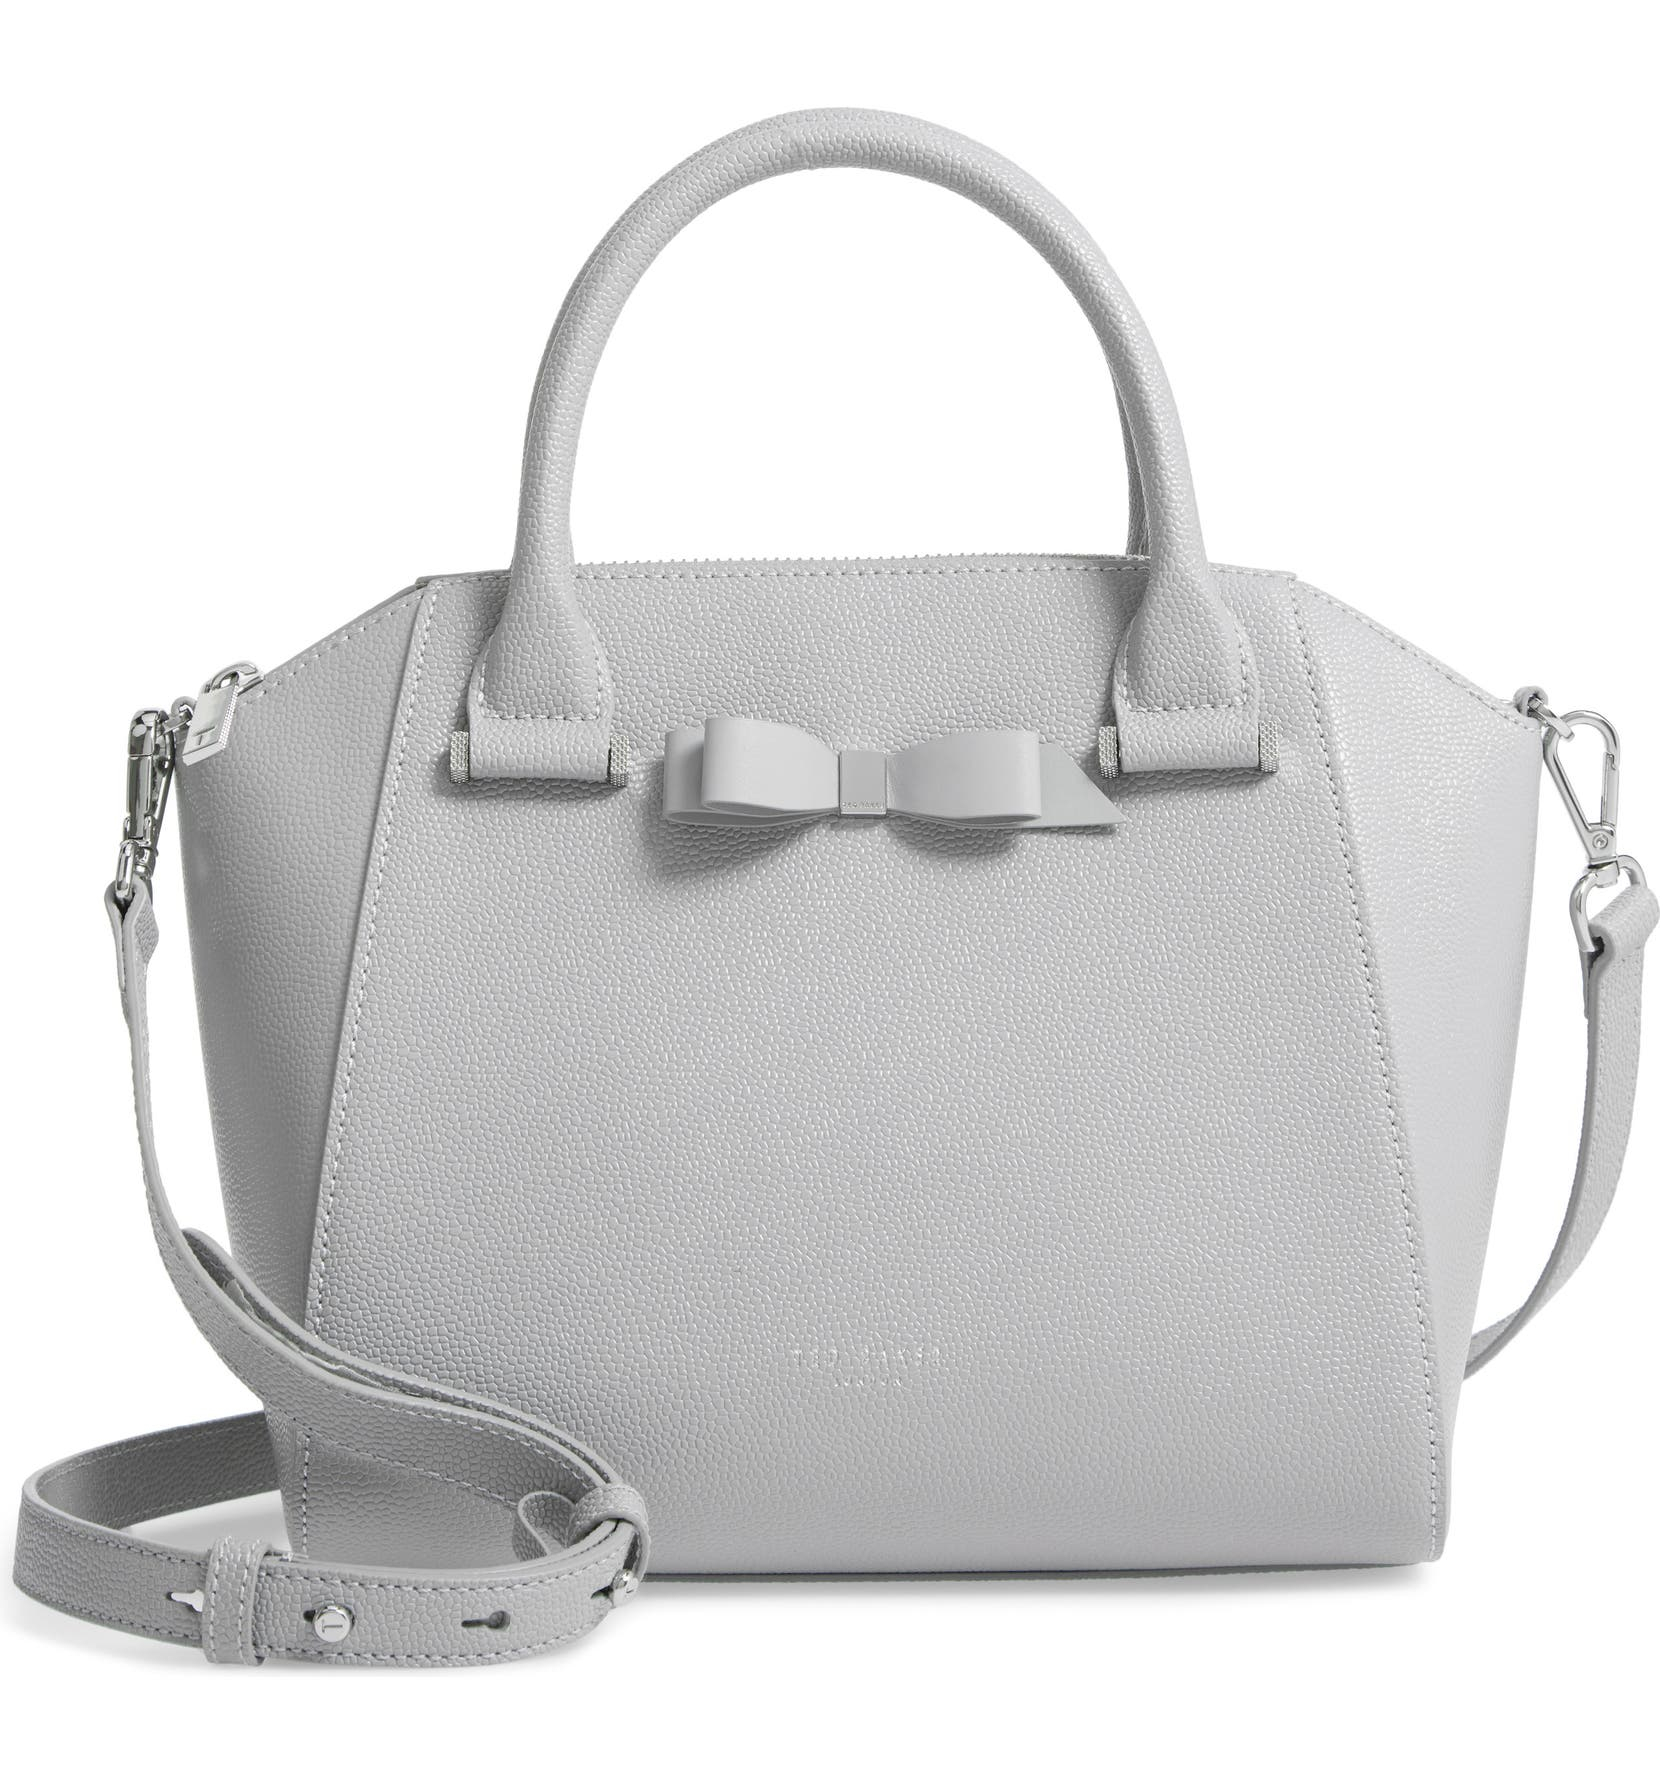 5fe2334575fe32 Ted Baker London Janne Bow Leather Tote